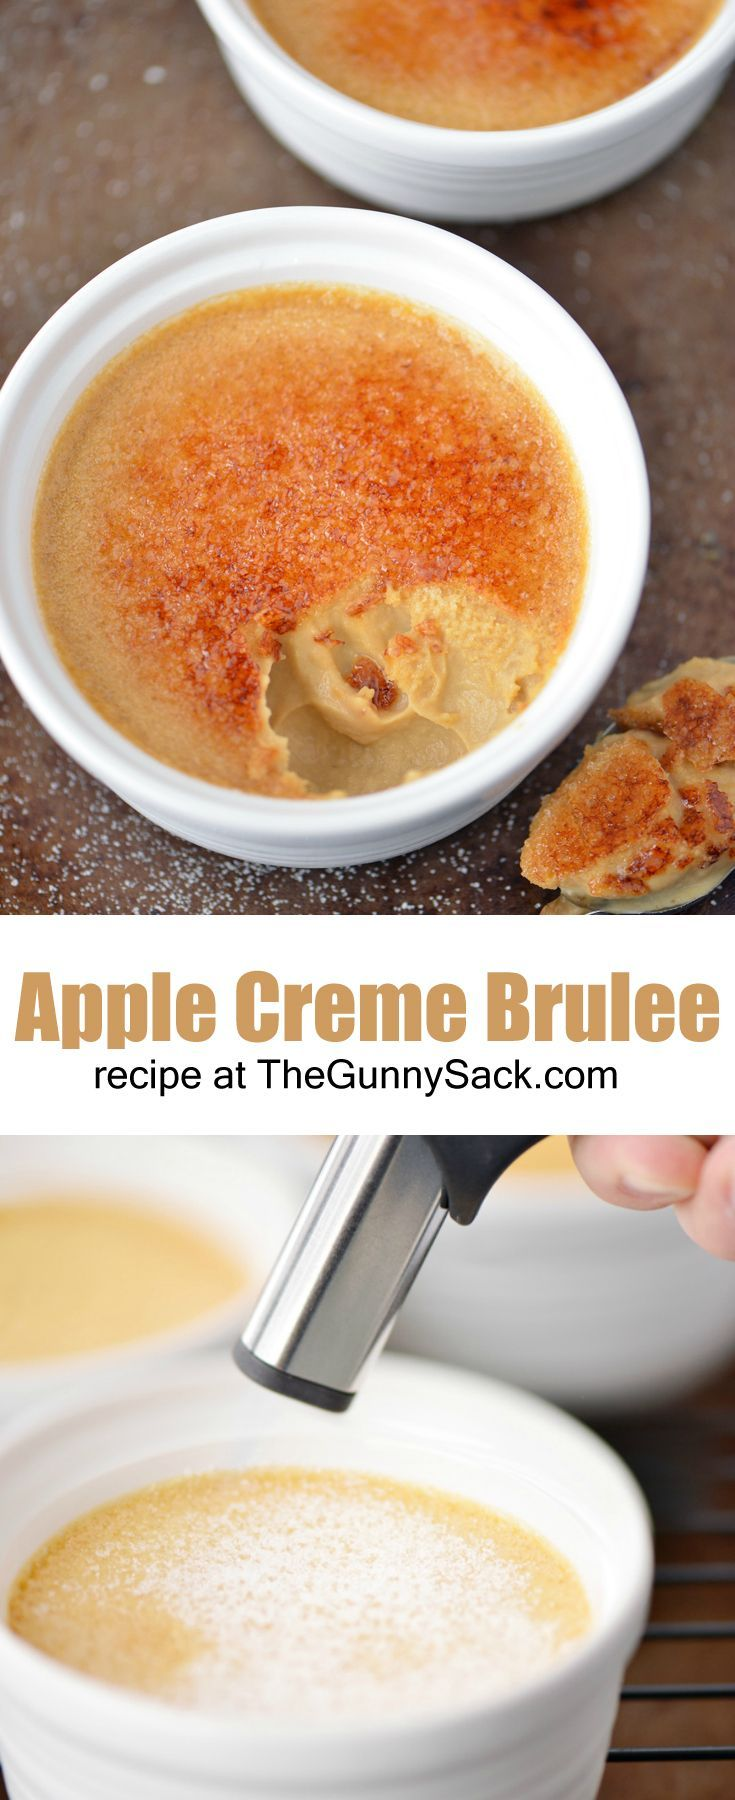 Smooth, creamy Apple Creme Brulee recipe with a crunchy, caramelized topping! This is an EASY, yet impressive dessert to serve dinner guests!